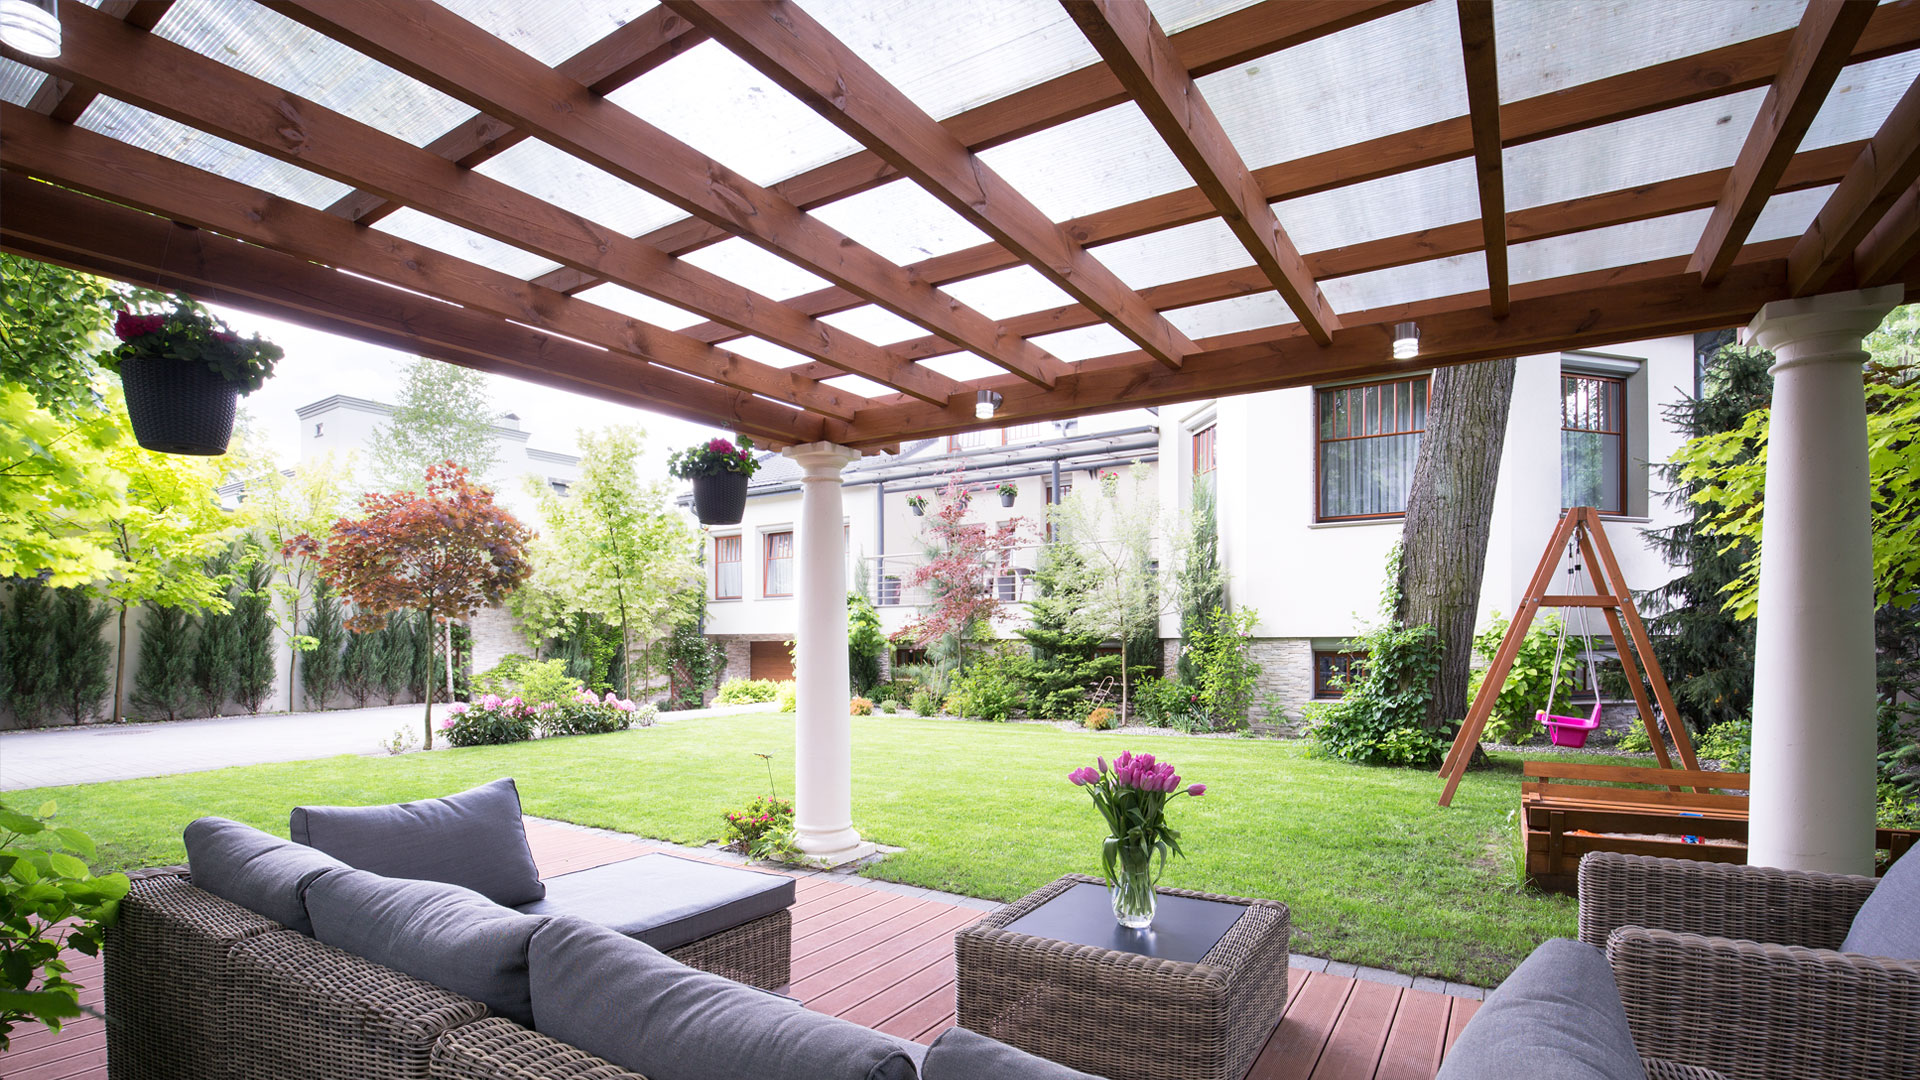 Home san diego residential patios lattice shade covers and solid roof covers - Amenagement exterieur maison ...